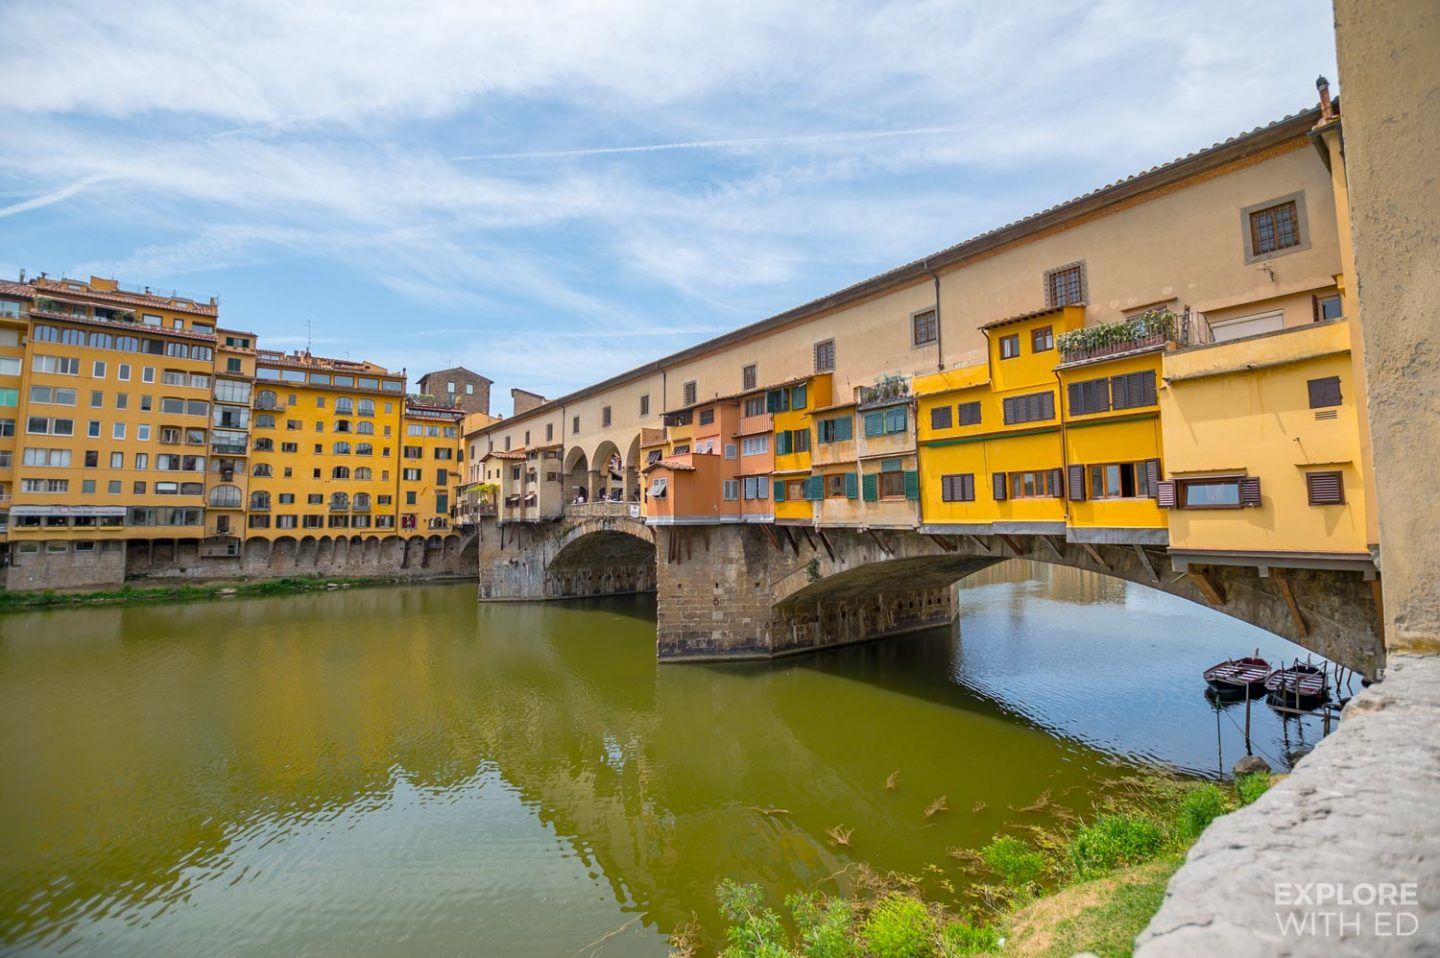 The Famous Bridge in Florence